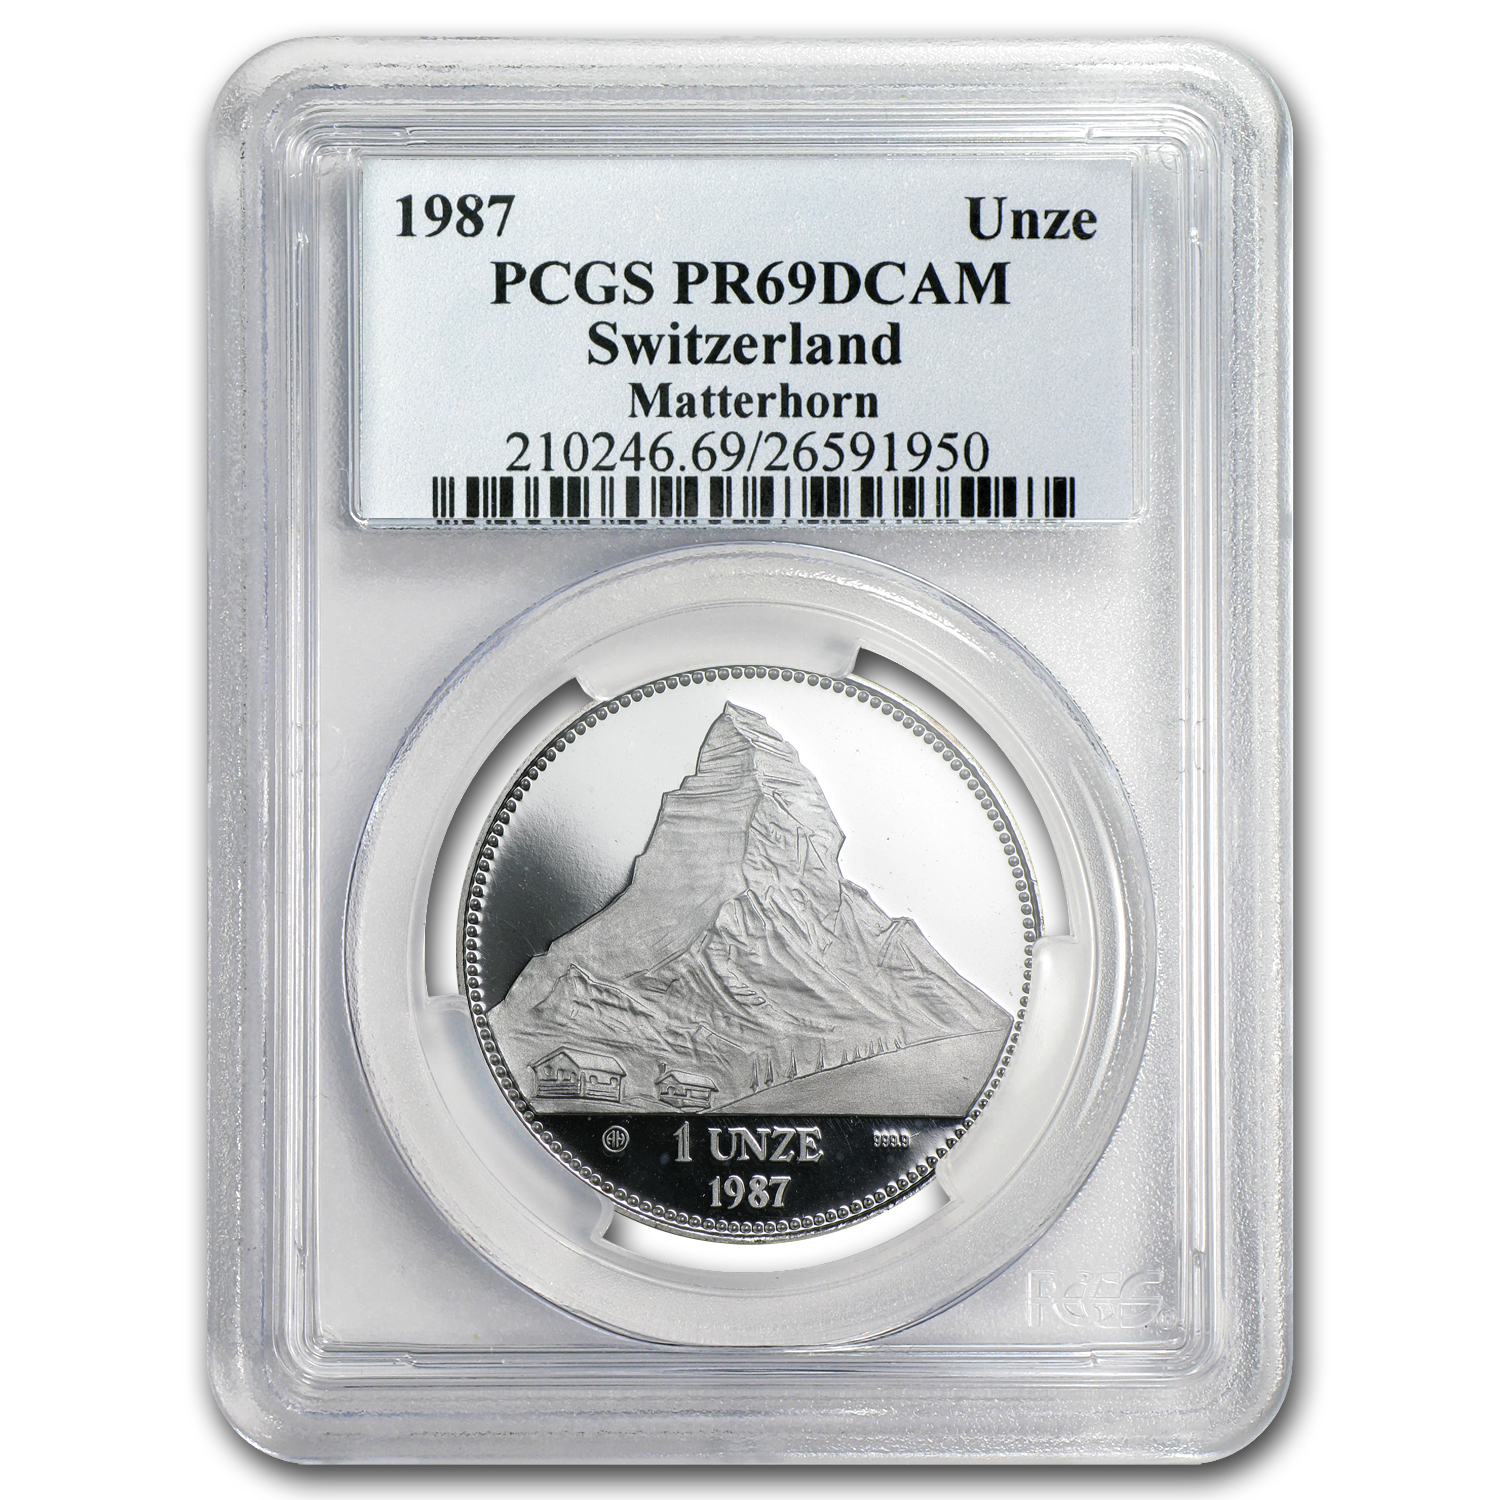 Switzerland 1987 1 oz Proof Silver Piedfort PCGS PR-69 DC